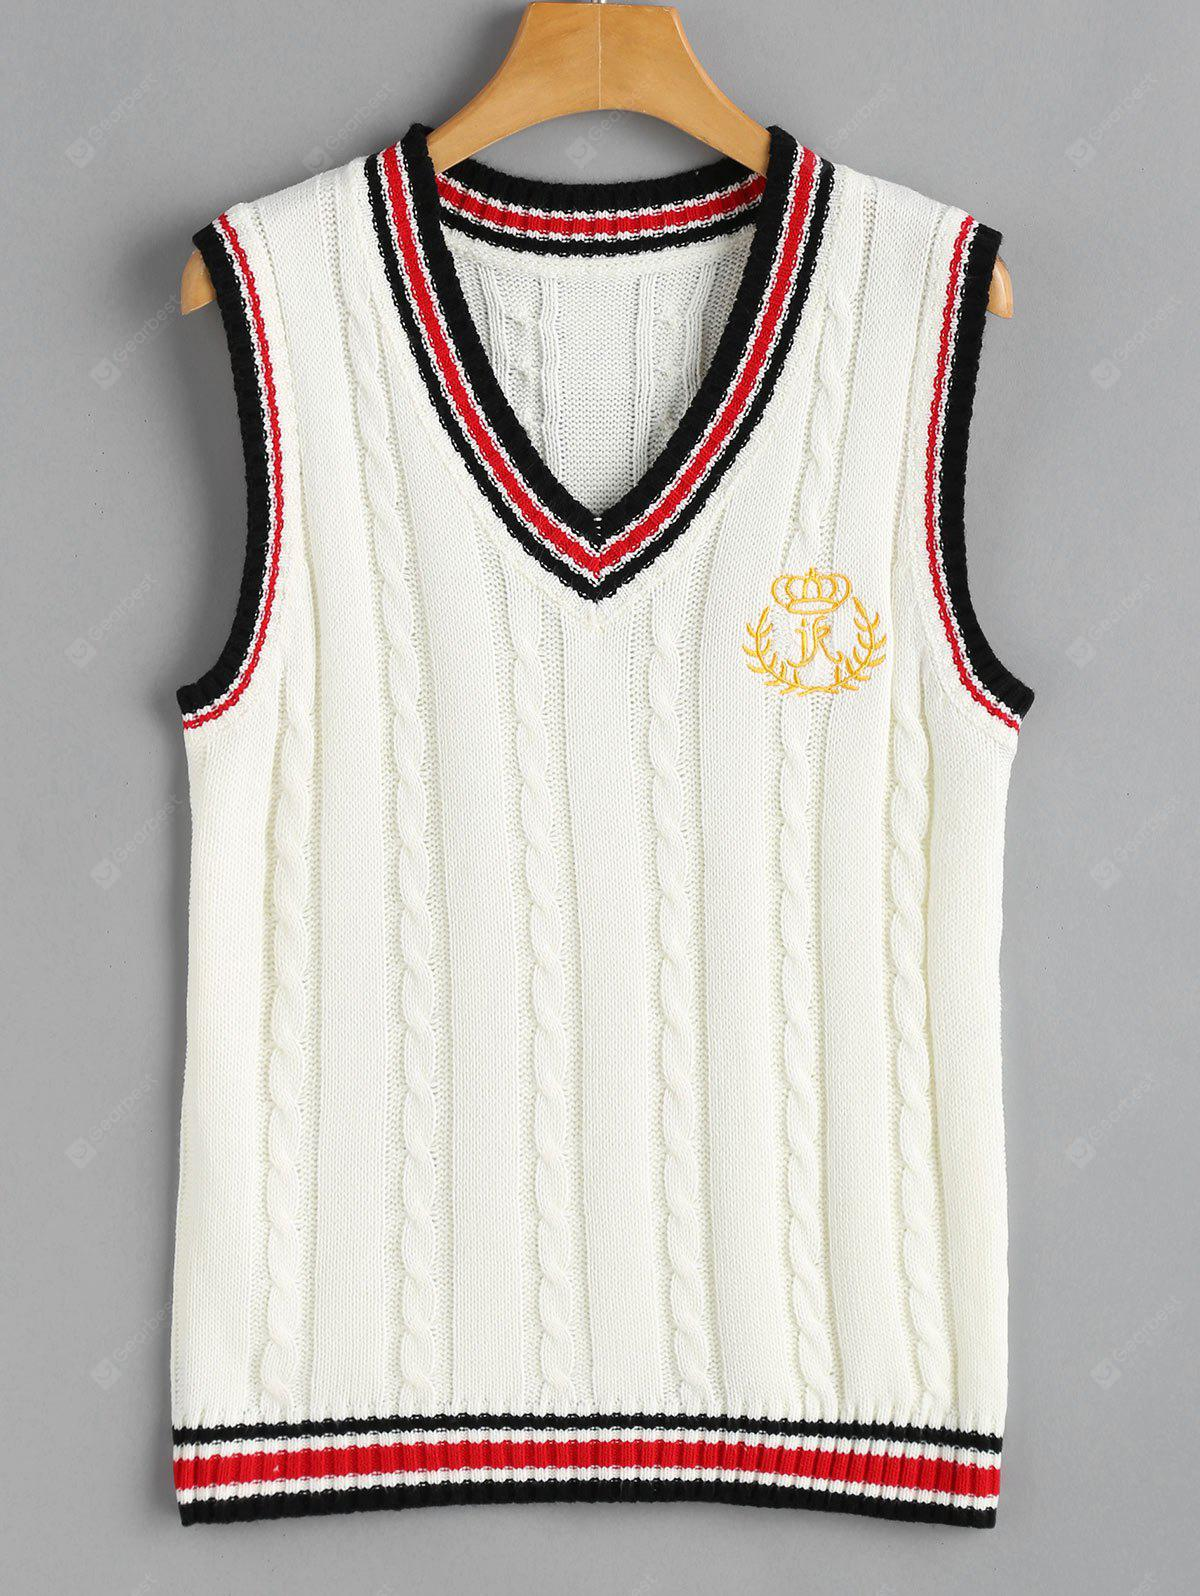 OFF-WHITE V Neck Cable Knit Patchwork Sweater Vest